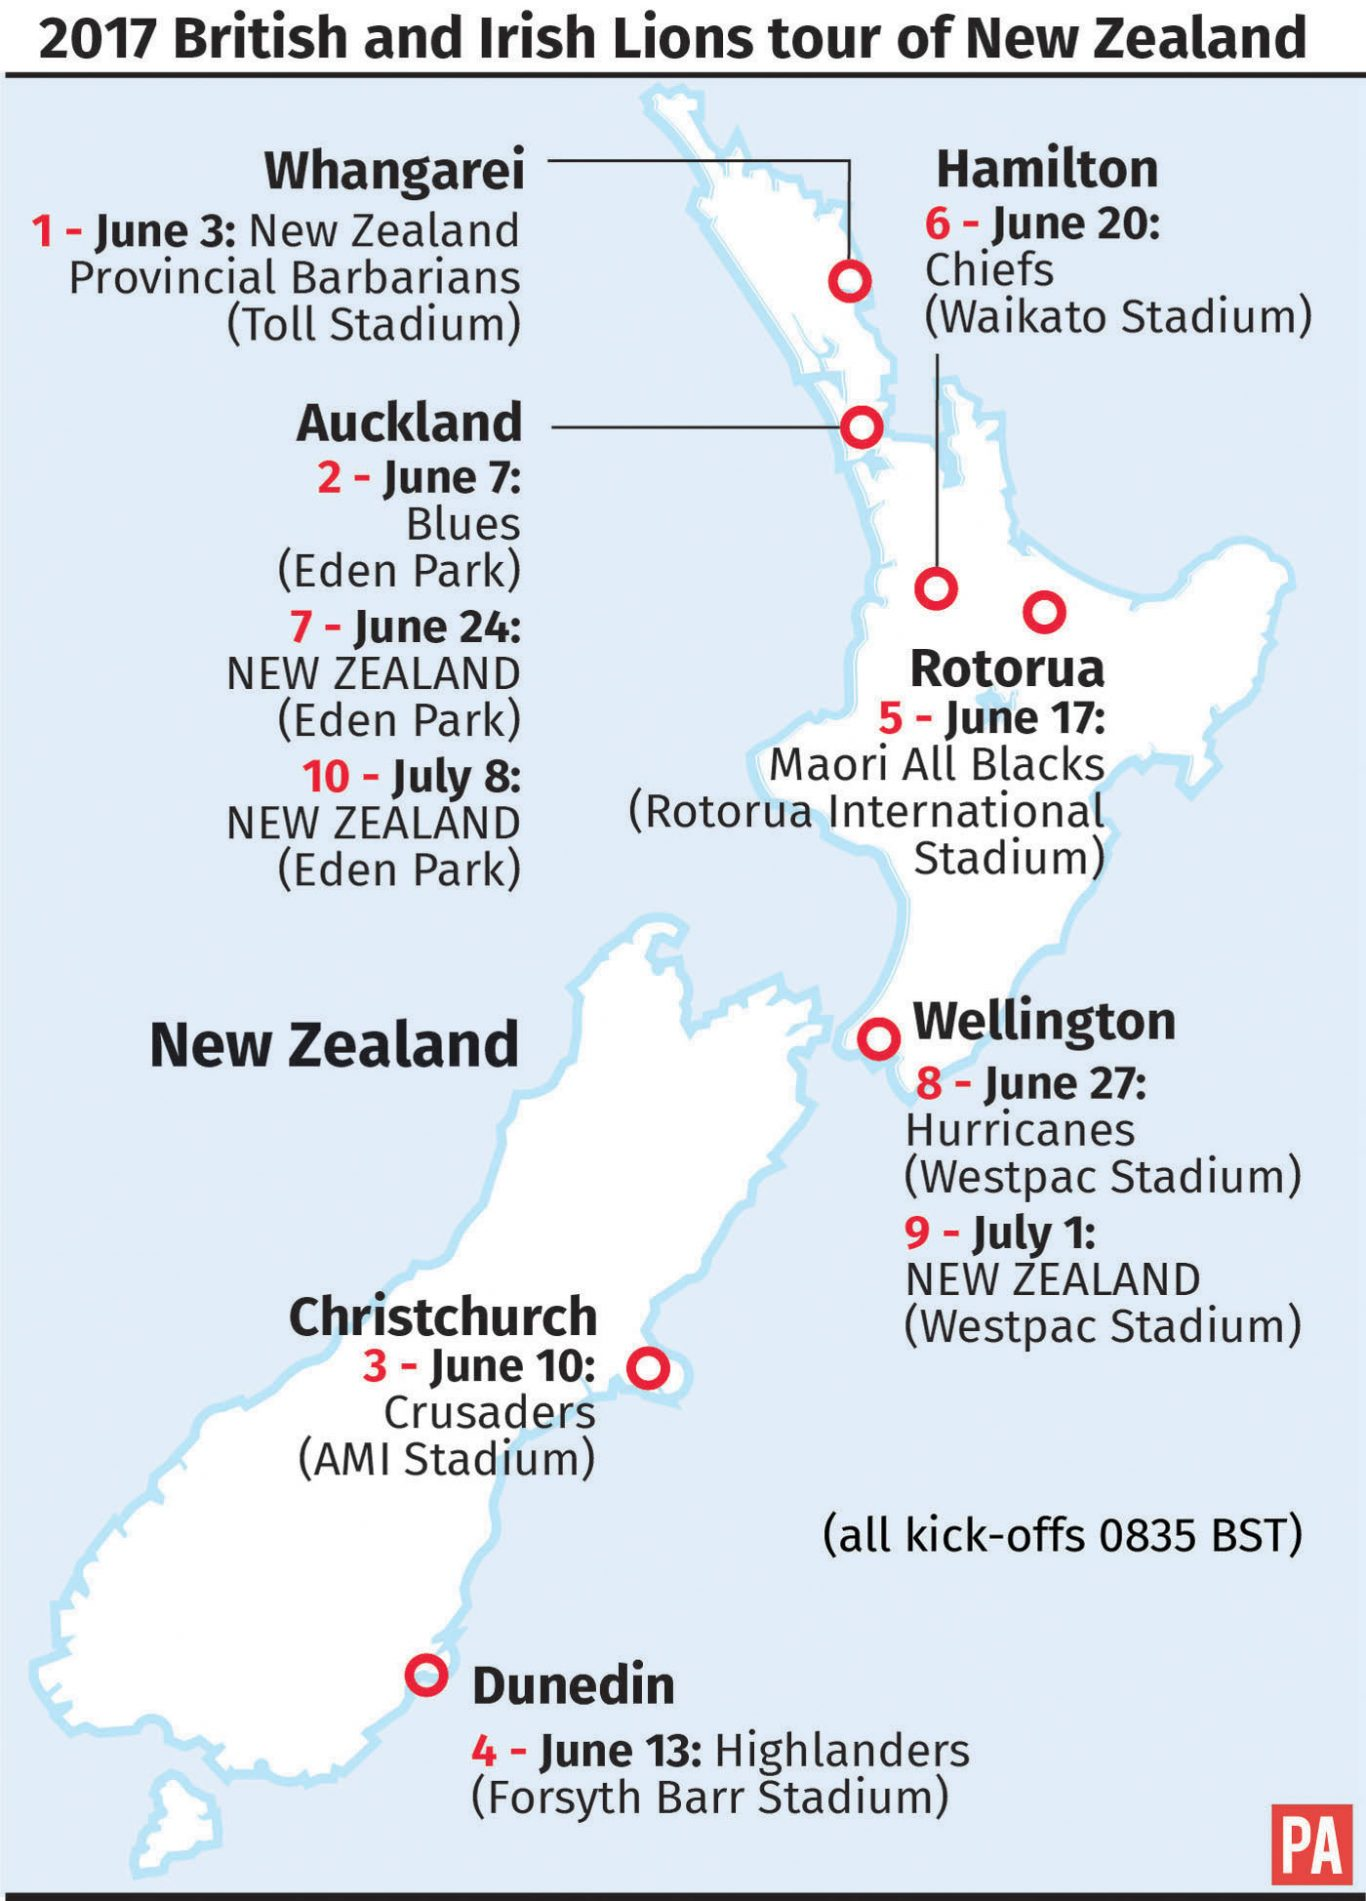 British and Irish Lions tour of New Zealand.